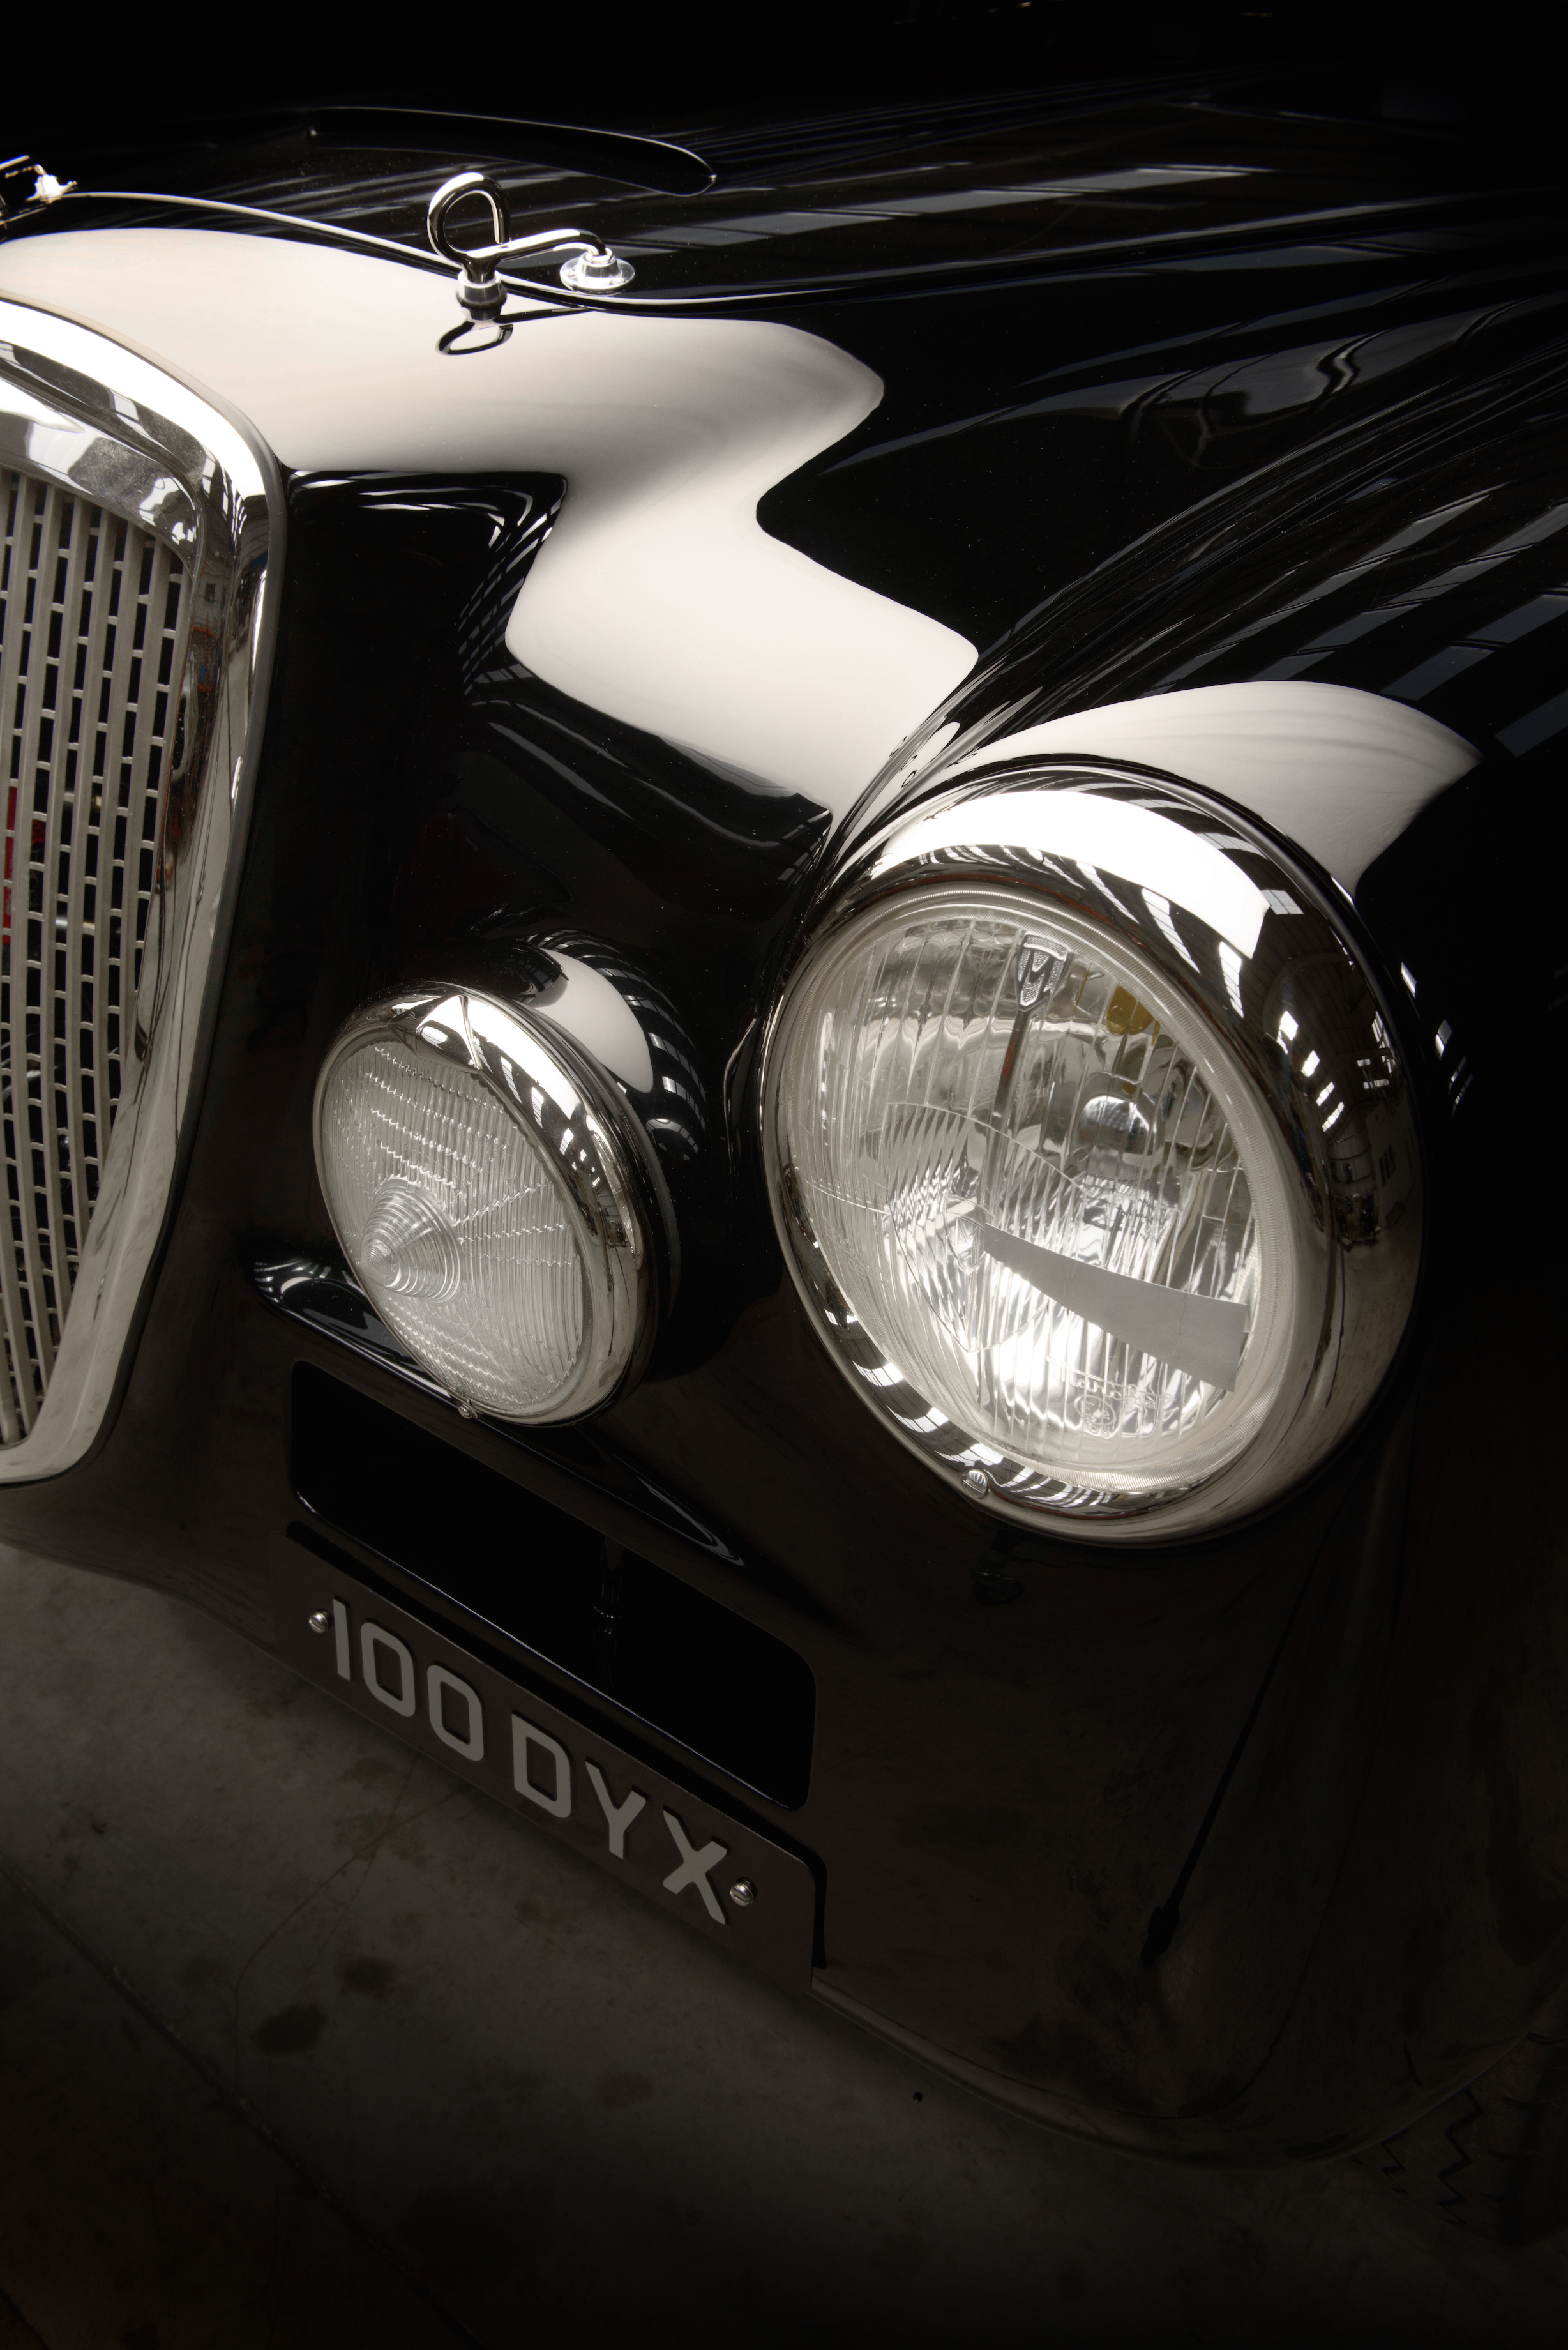 Marchal headlamps and fog lamps